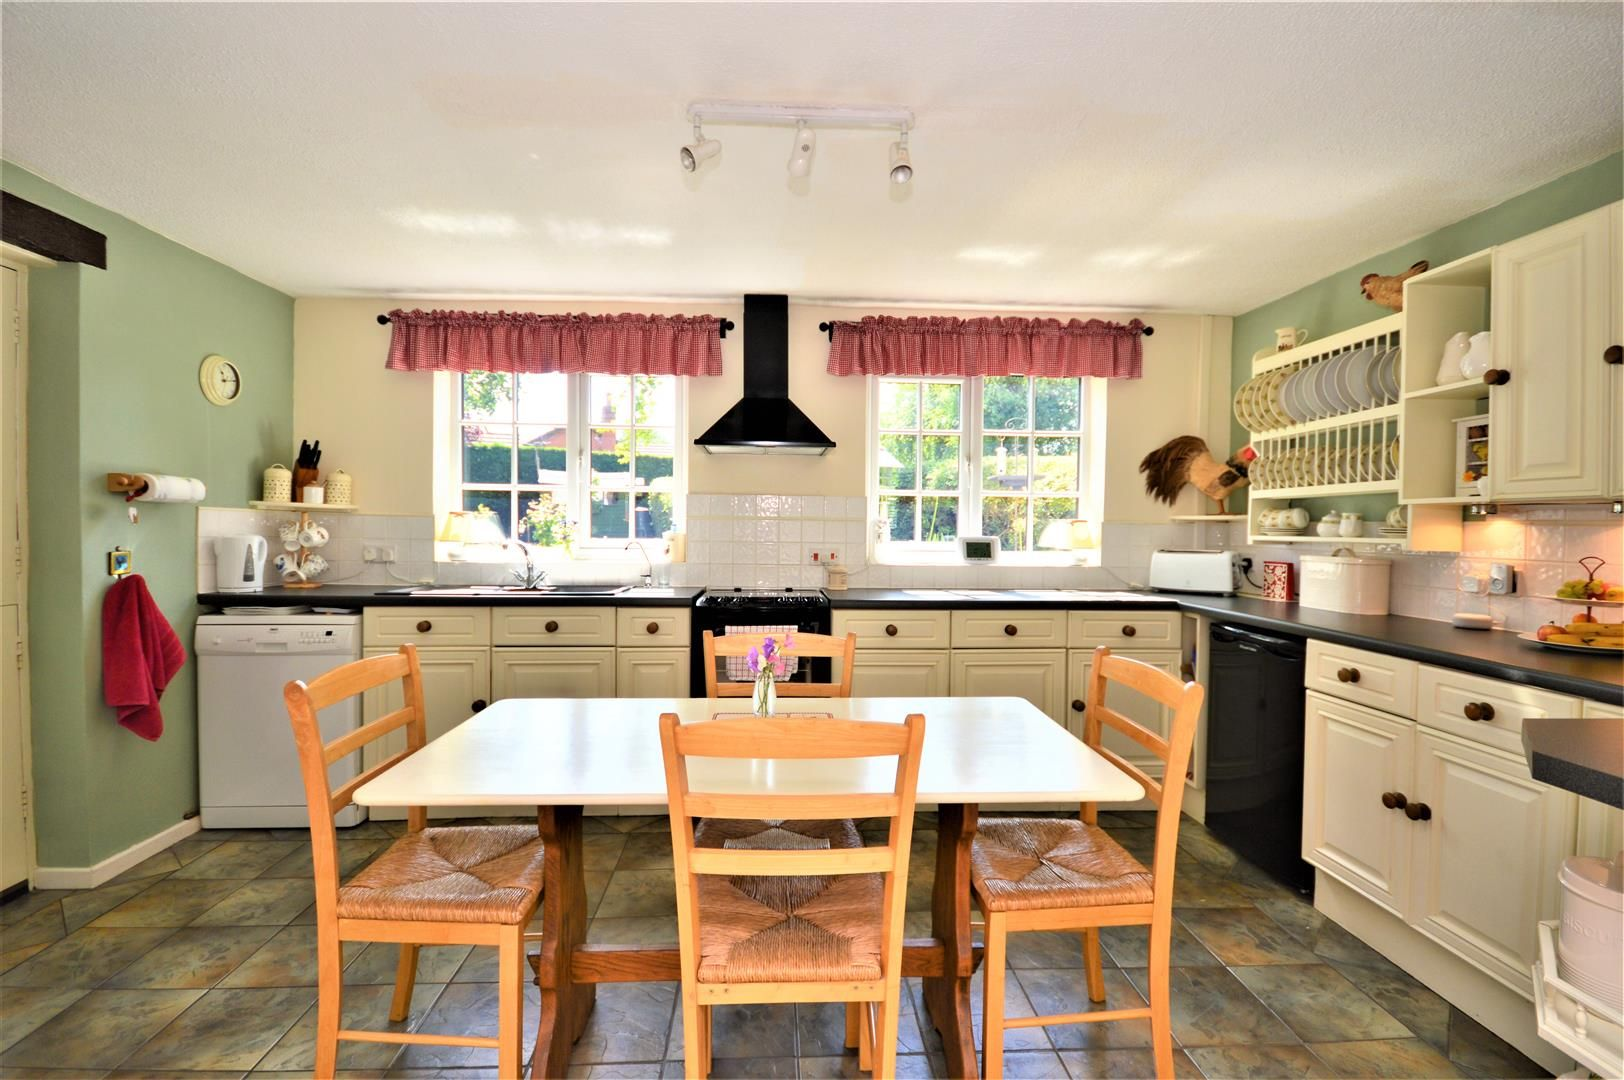 3 bed semi-detached for sale in Madley 7